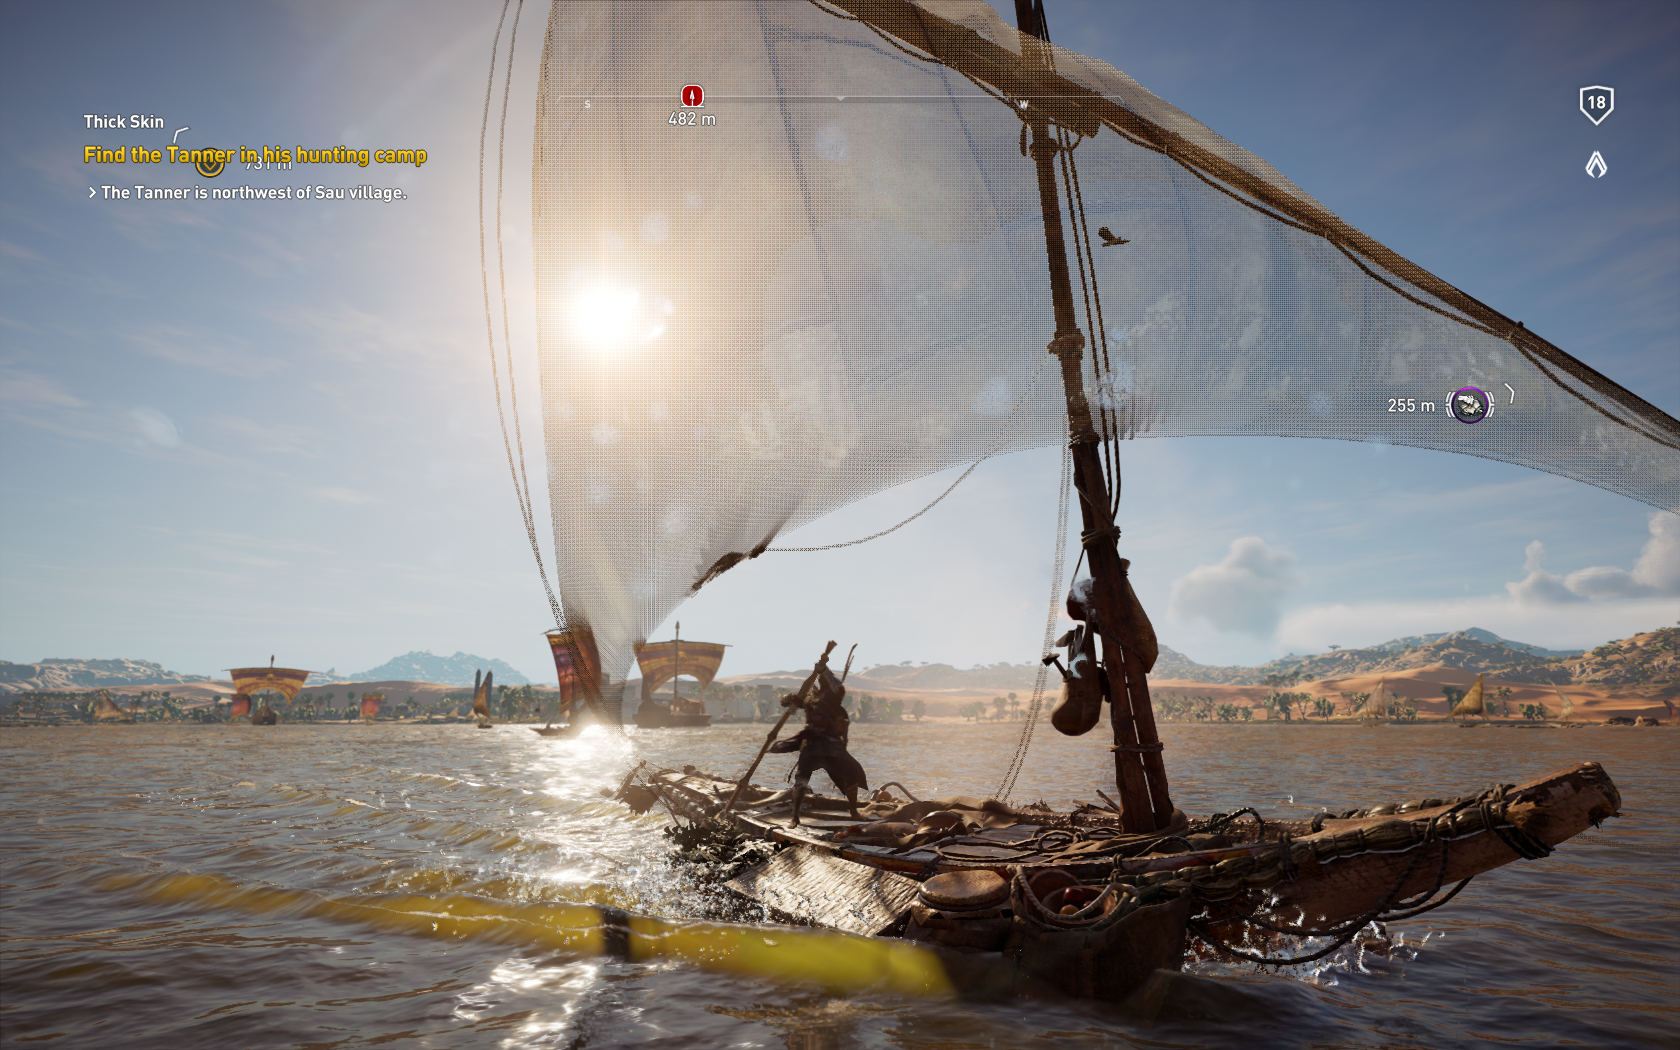 Notice how the sunlight illuminated the wake of the ship, best water ever!